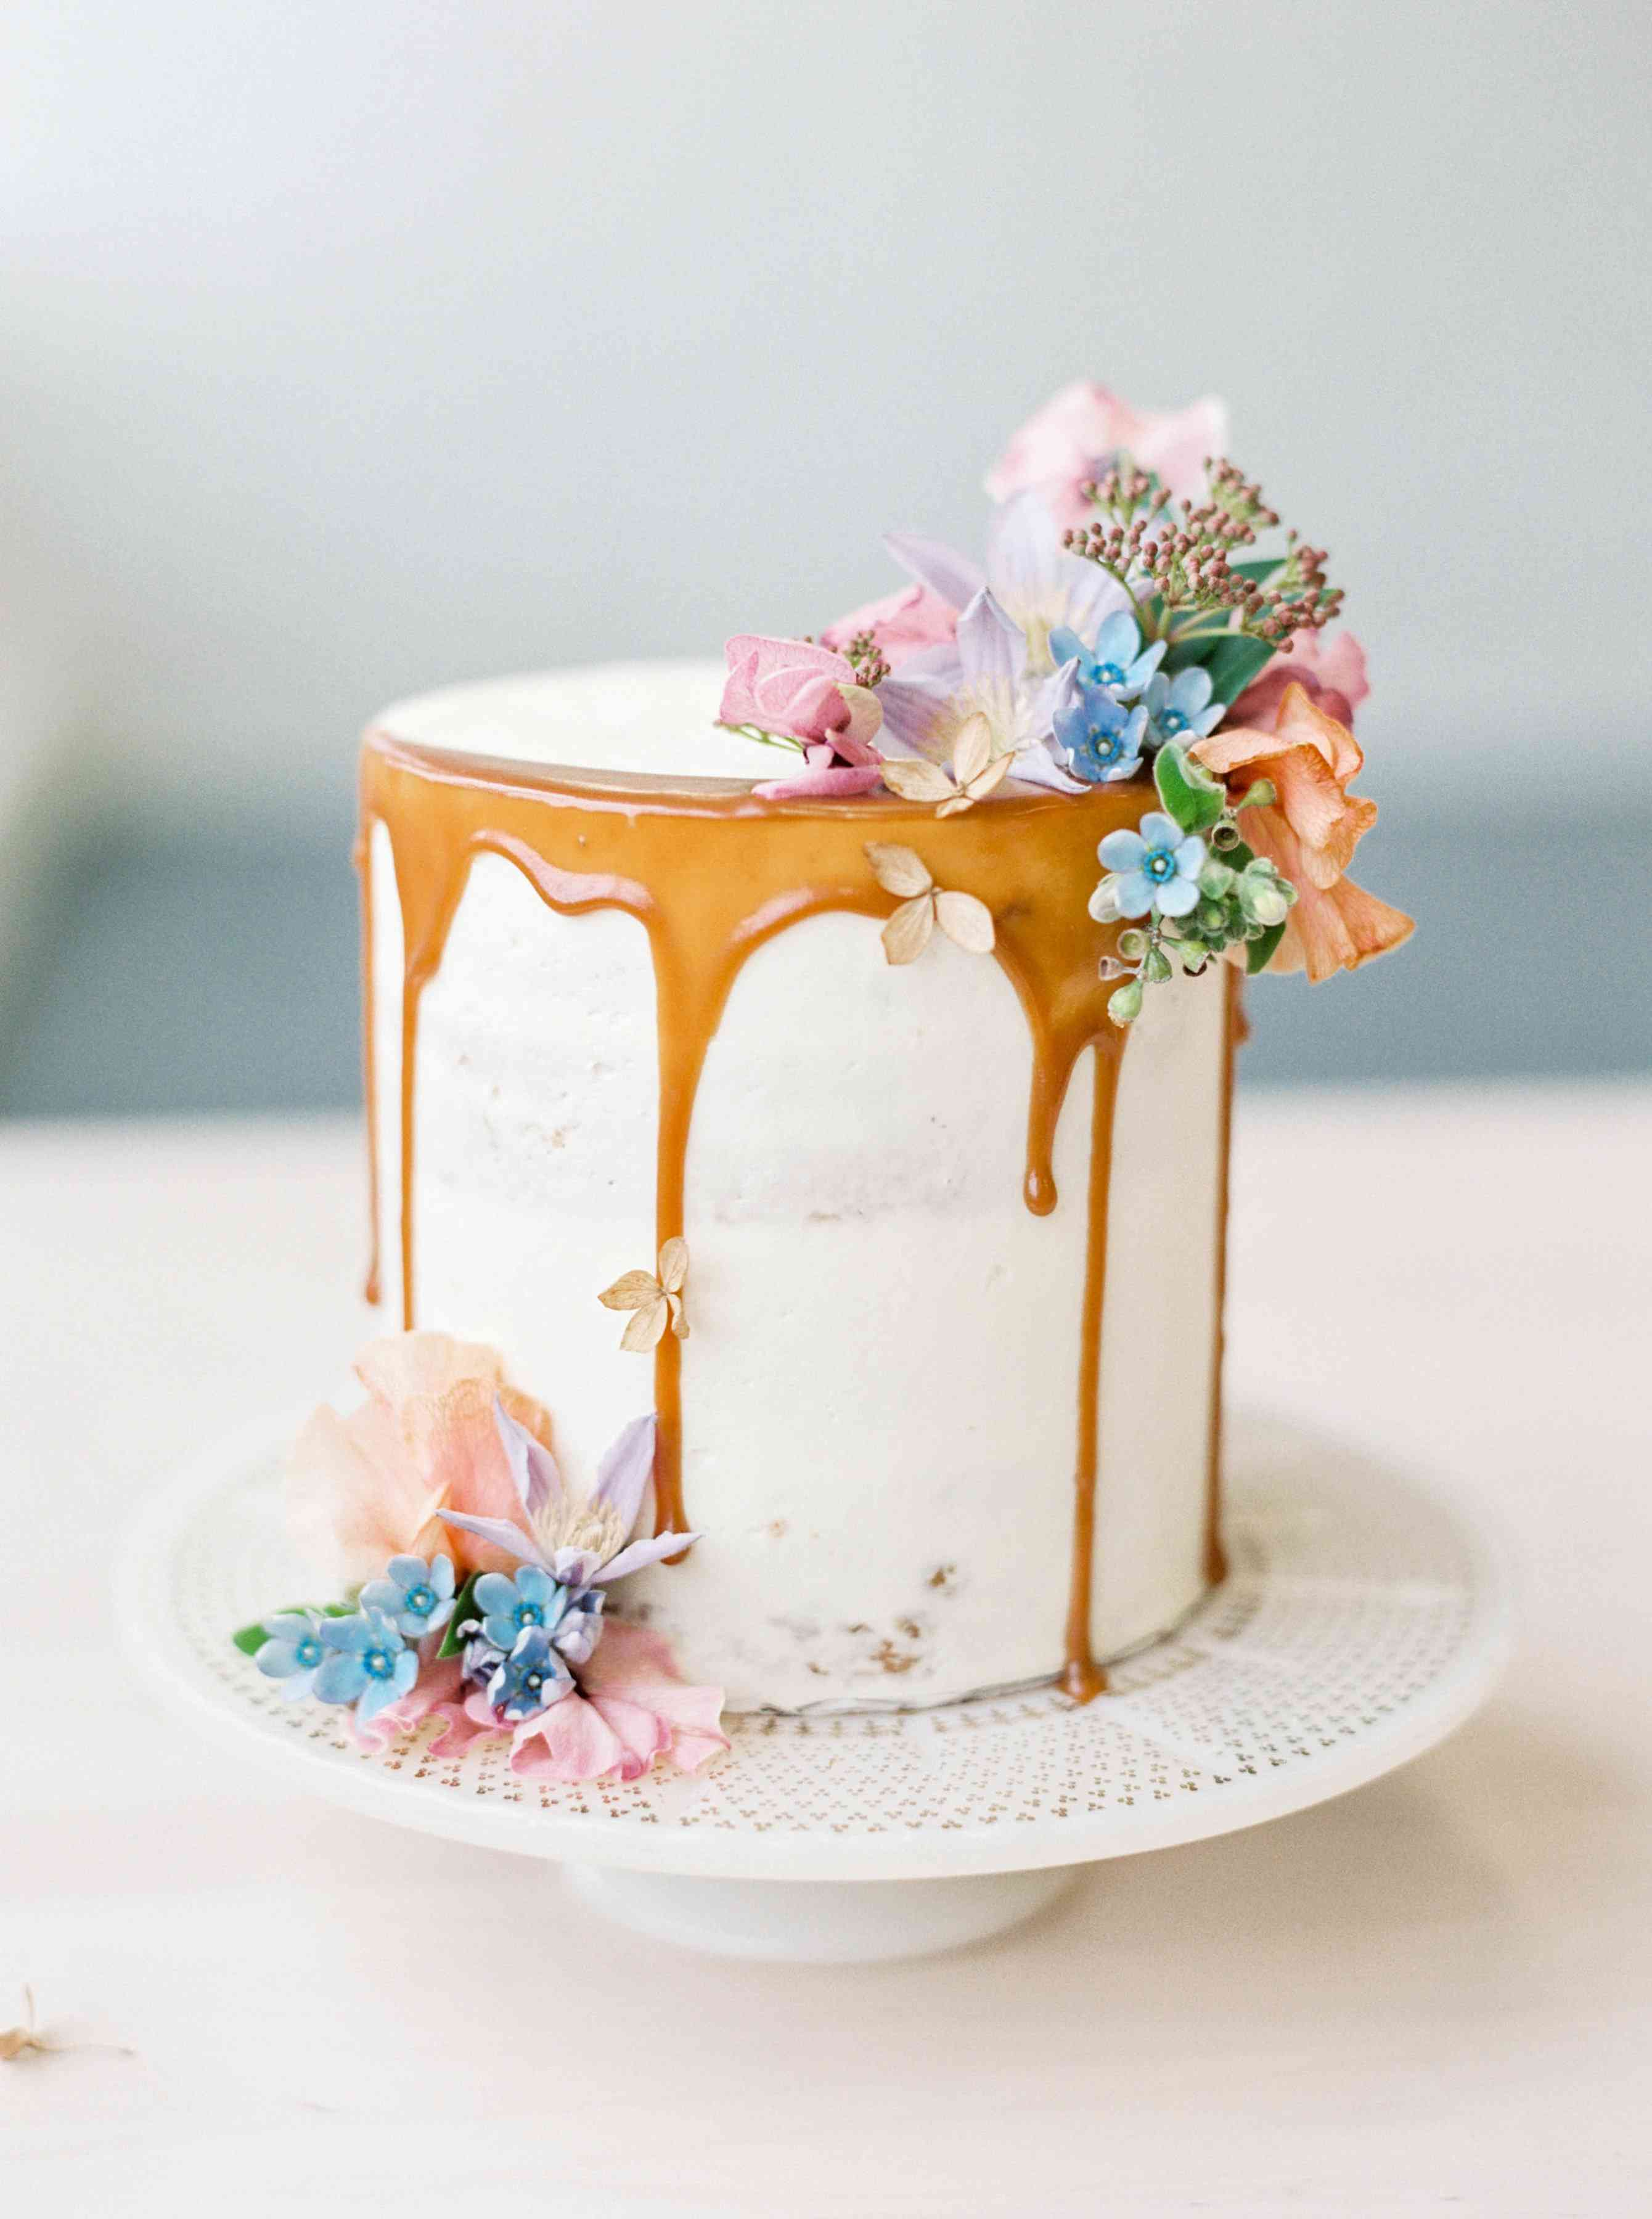 A one tiered white drip cake decorated with flowers